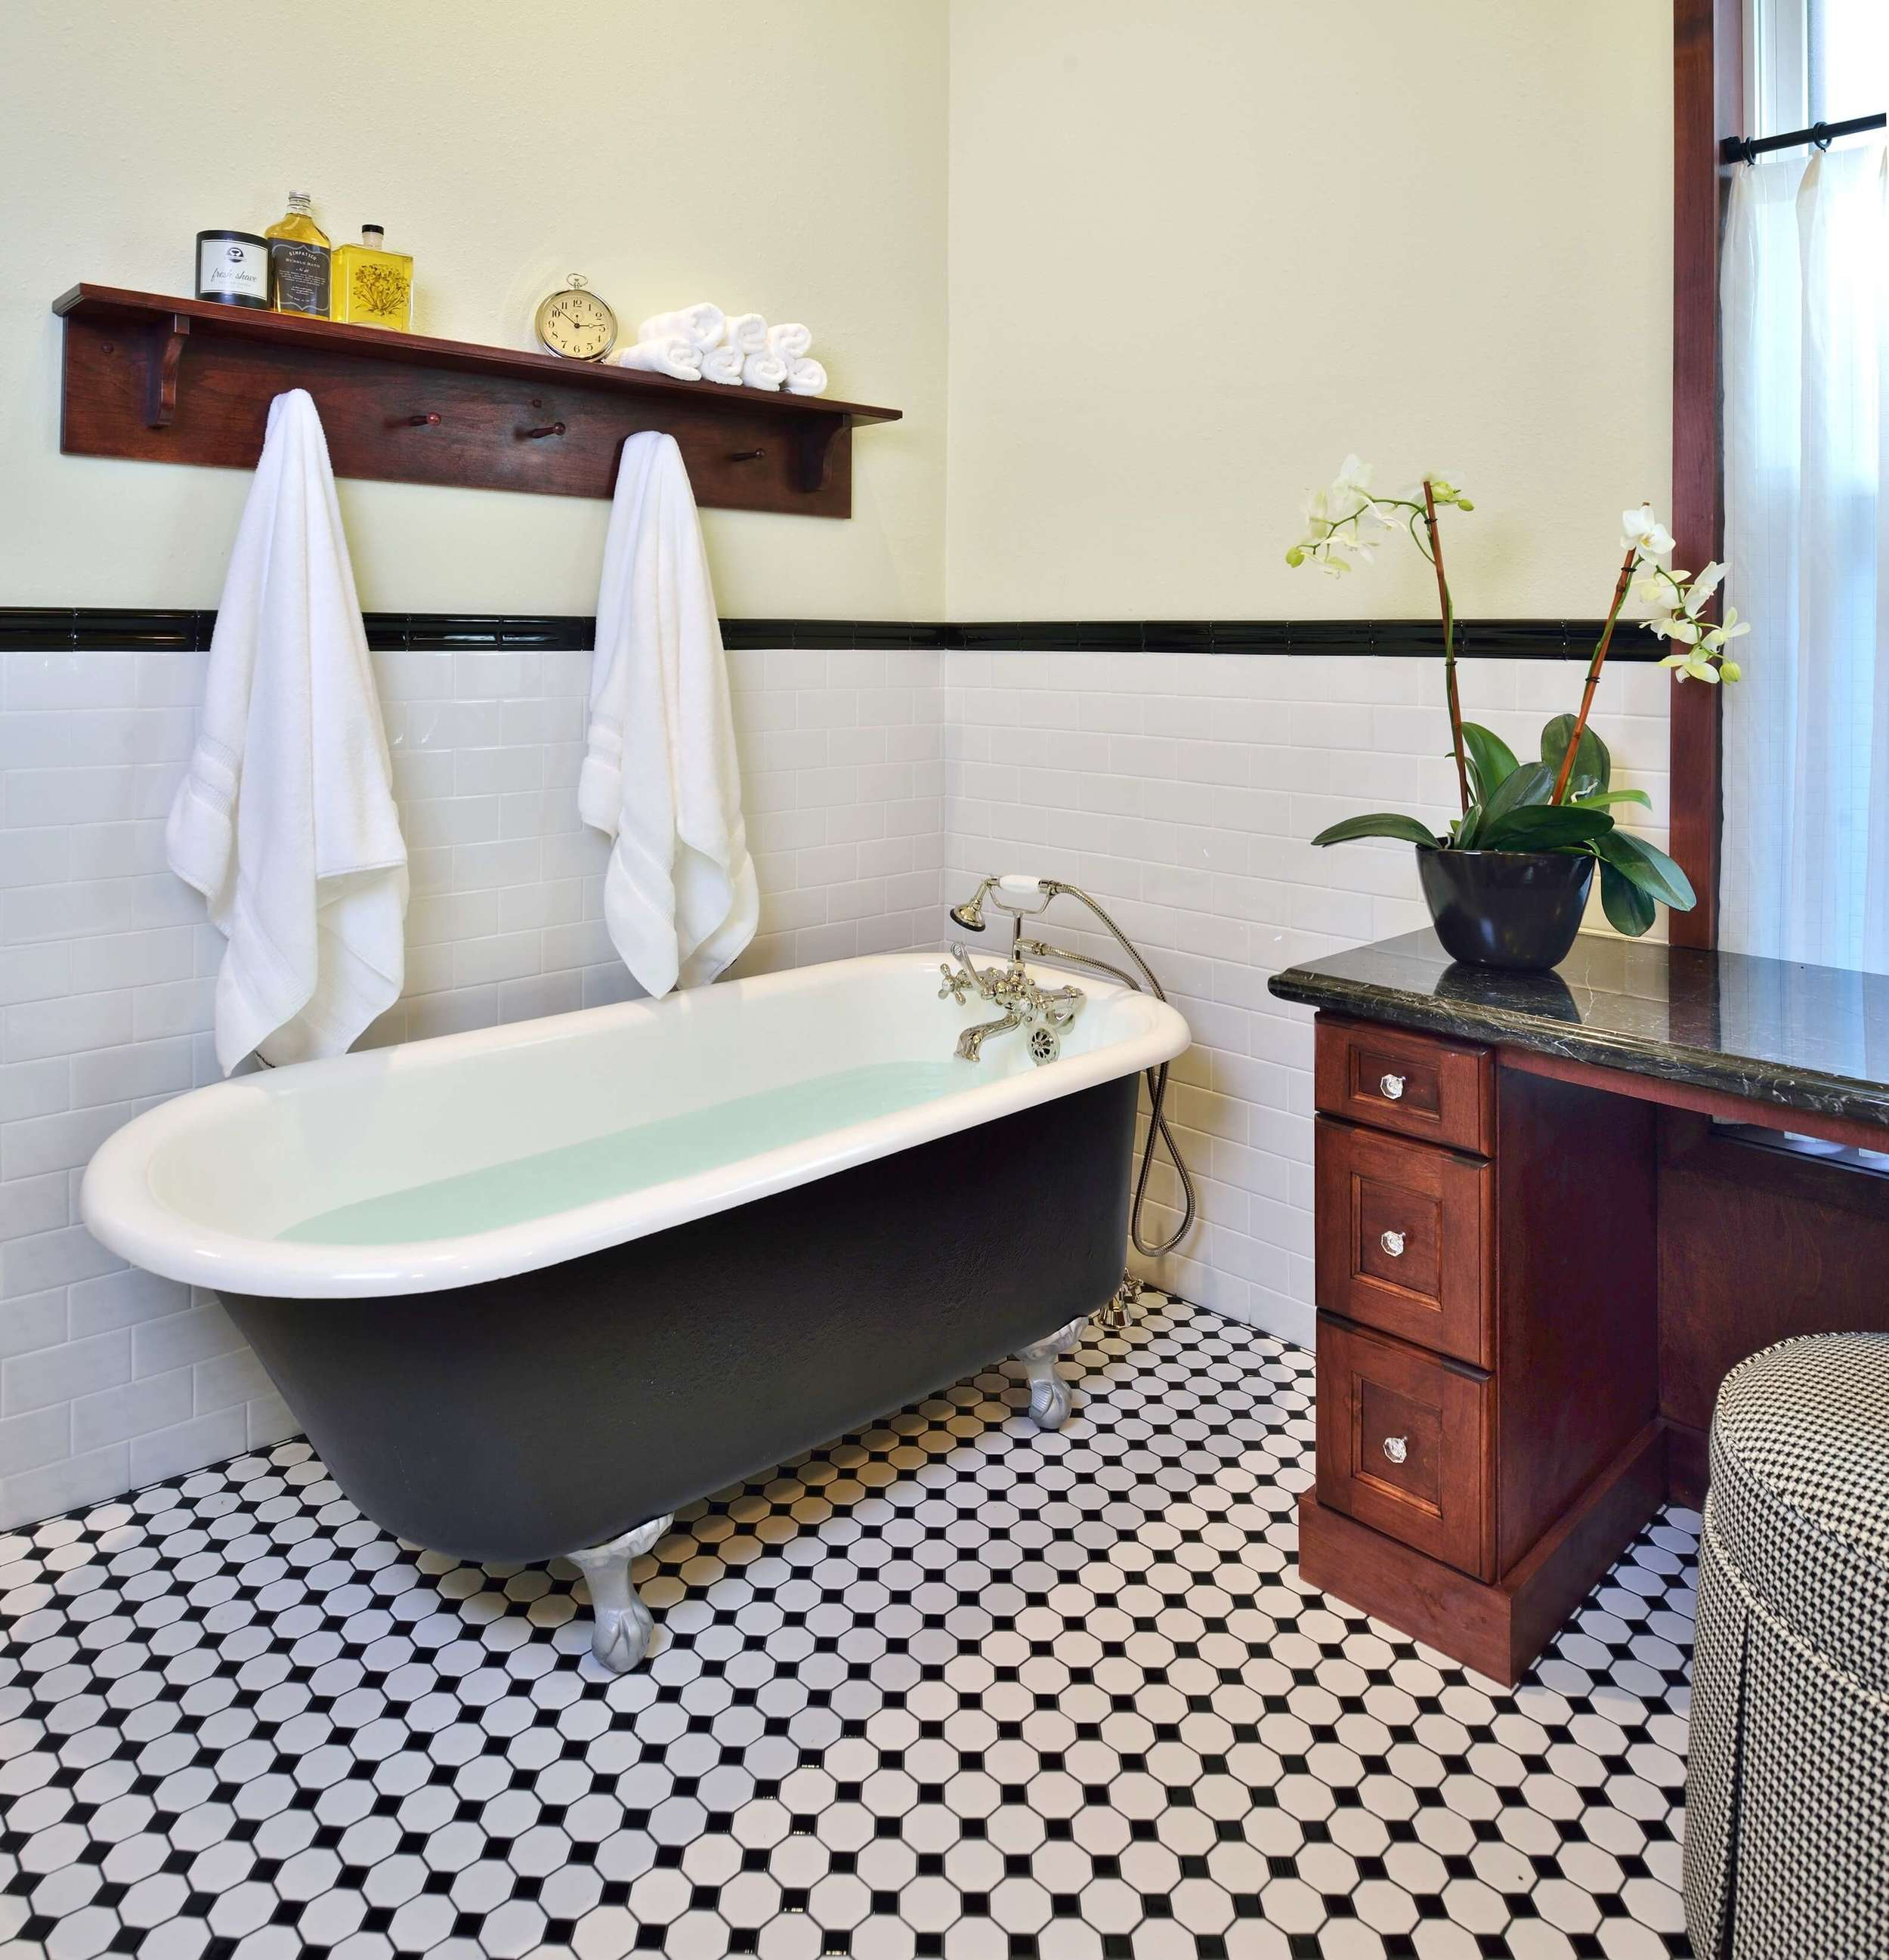 Footed tub in vintage style bathroom remodel with black and white tile floor, Designer: Carla Aston